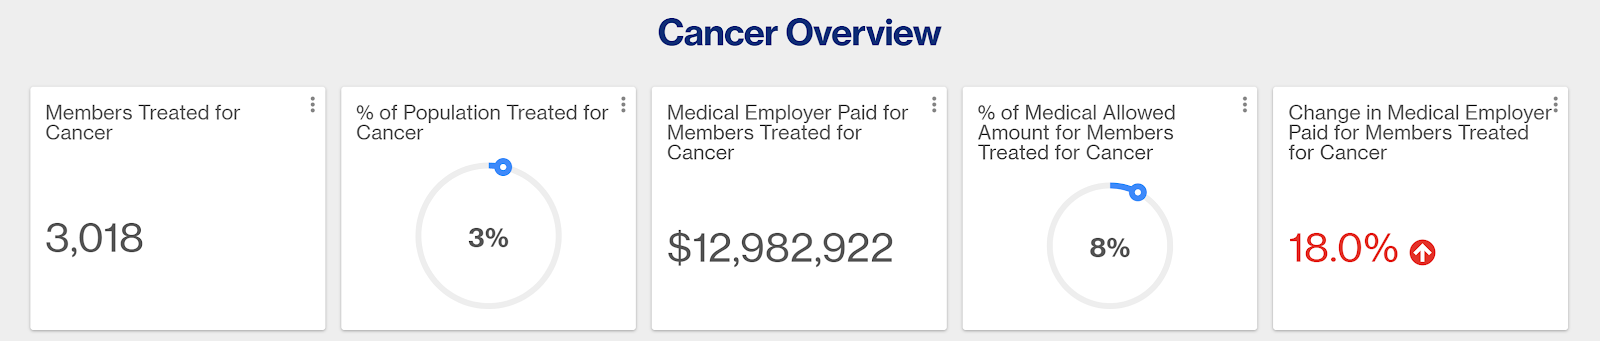 Charts showing member counts and costs for cancer treatment.